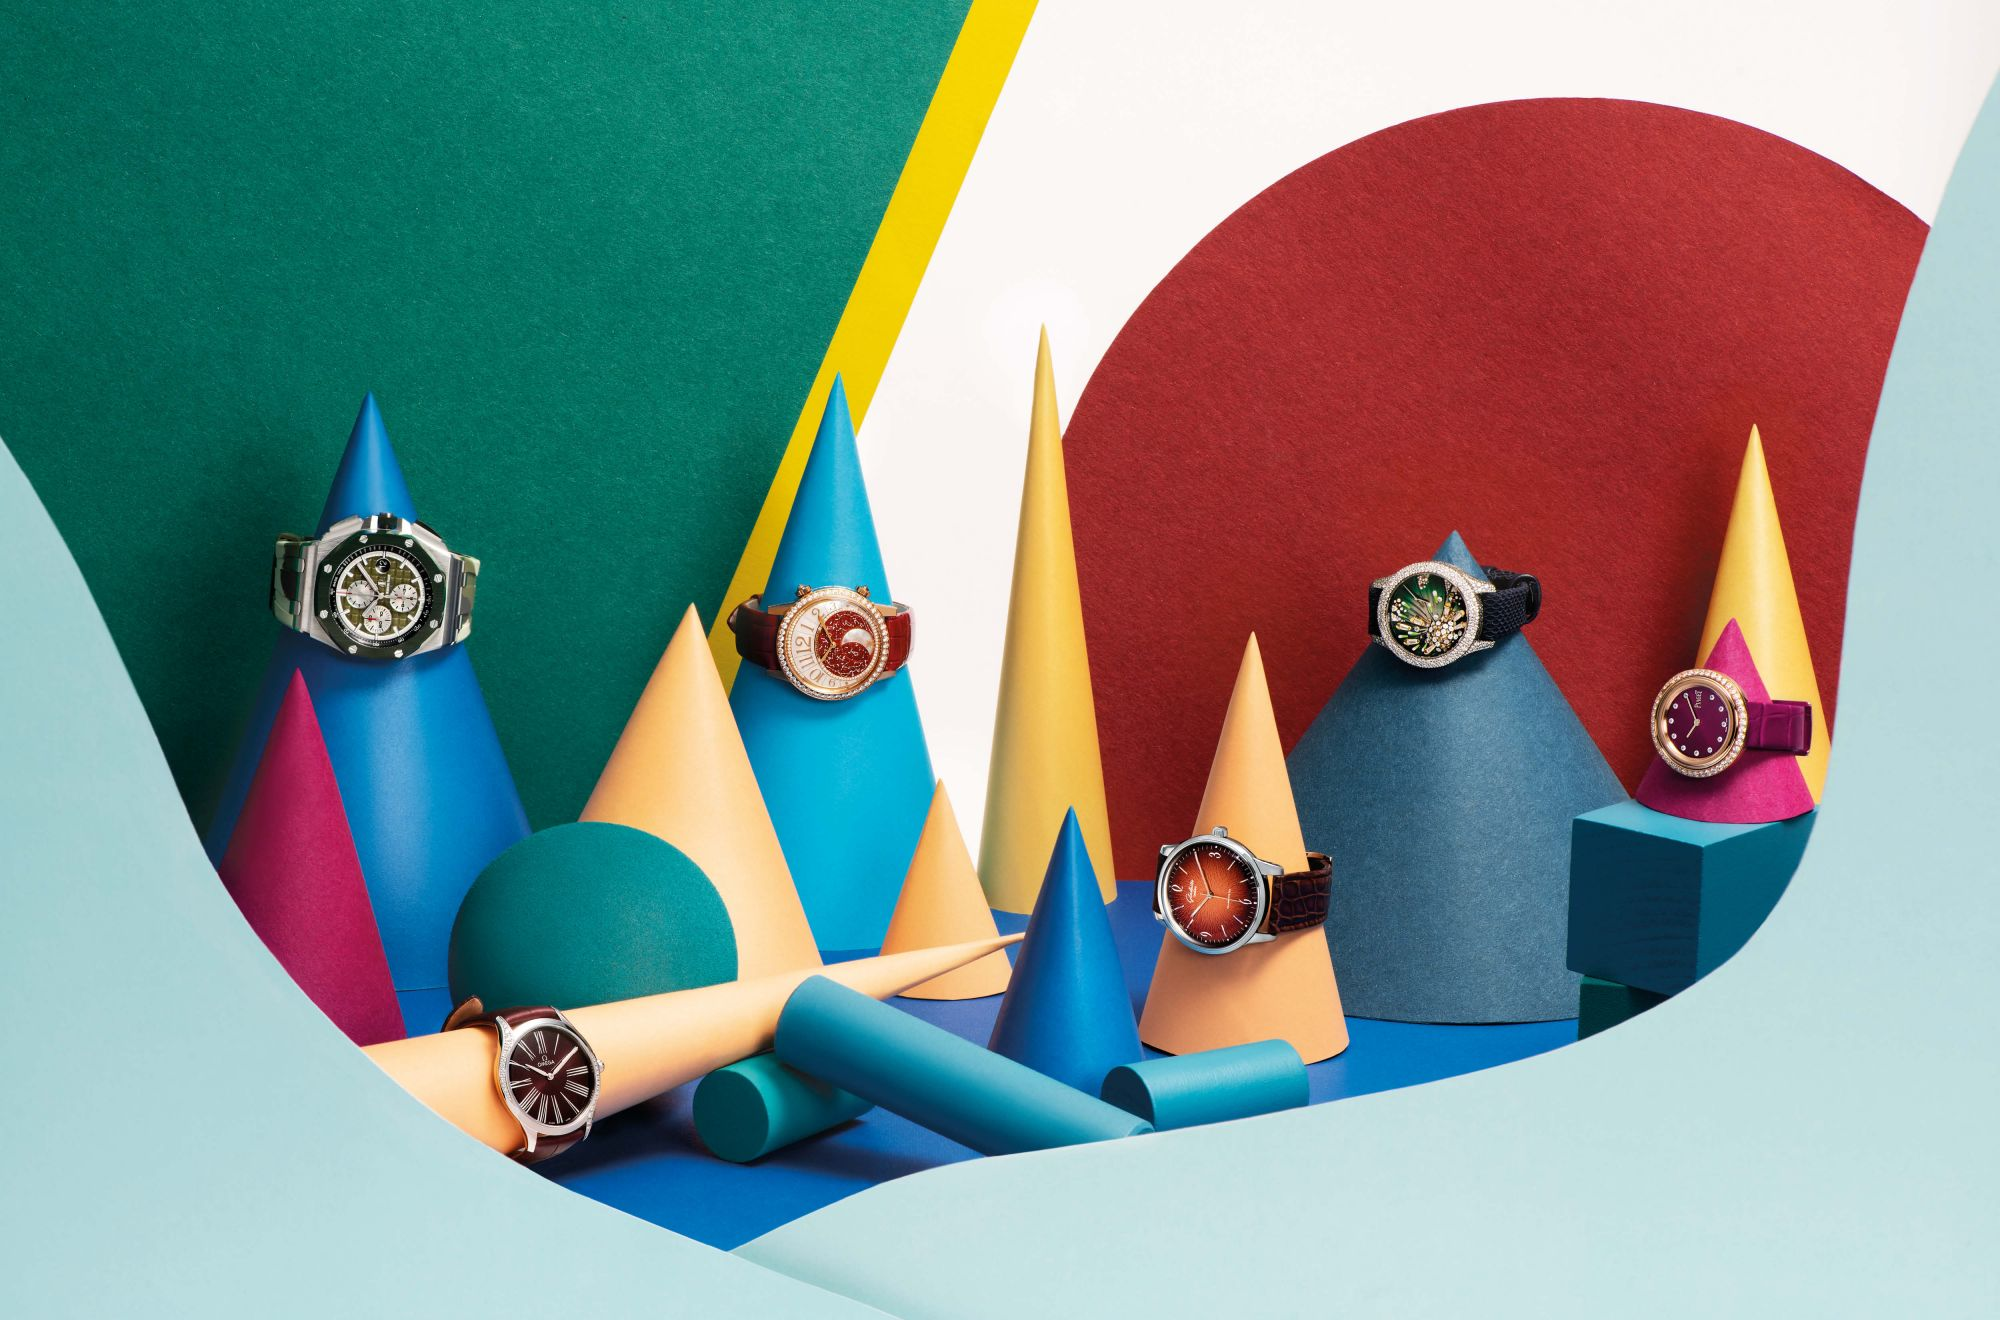 6 Colourful Luxury Watches To Brighten Up Your Summer